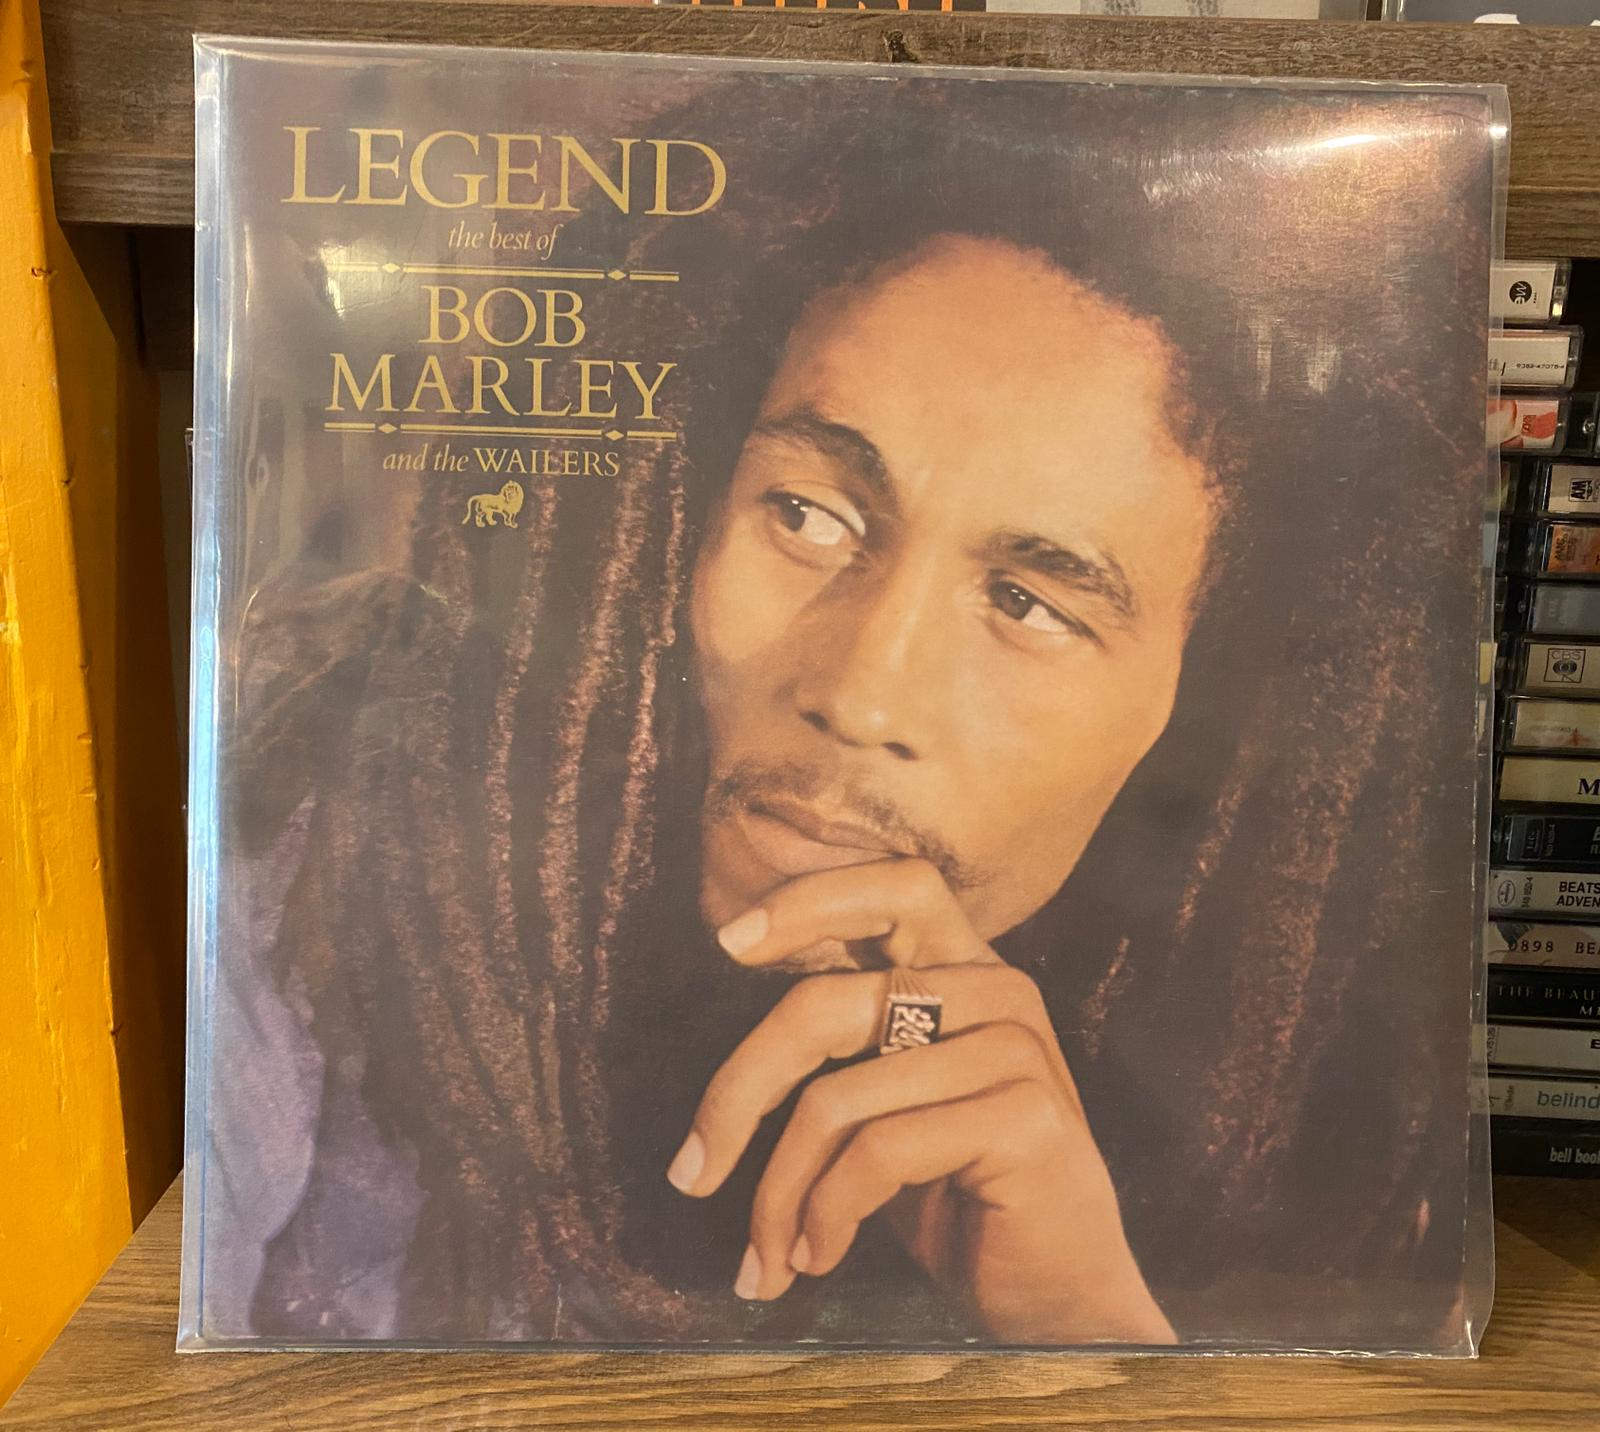 BOB MARLEY - THE WAILERS - LEGEND - THE BEST OF BOB MARLEY AND THE WAILERS - Vinyl, LP, Compilation - PLAK